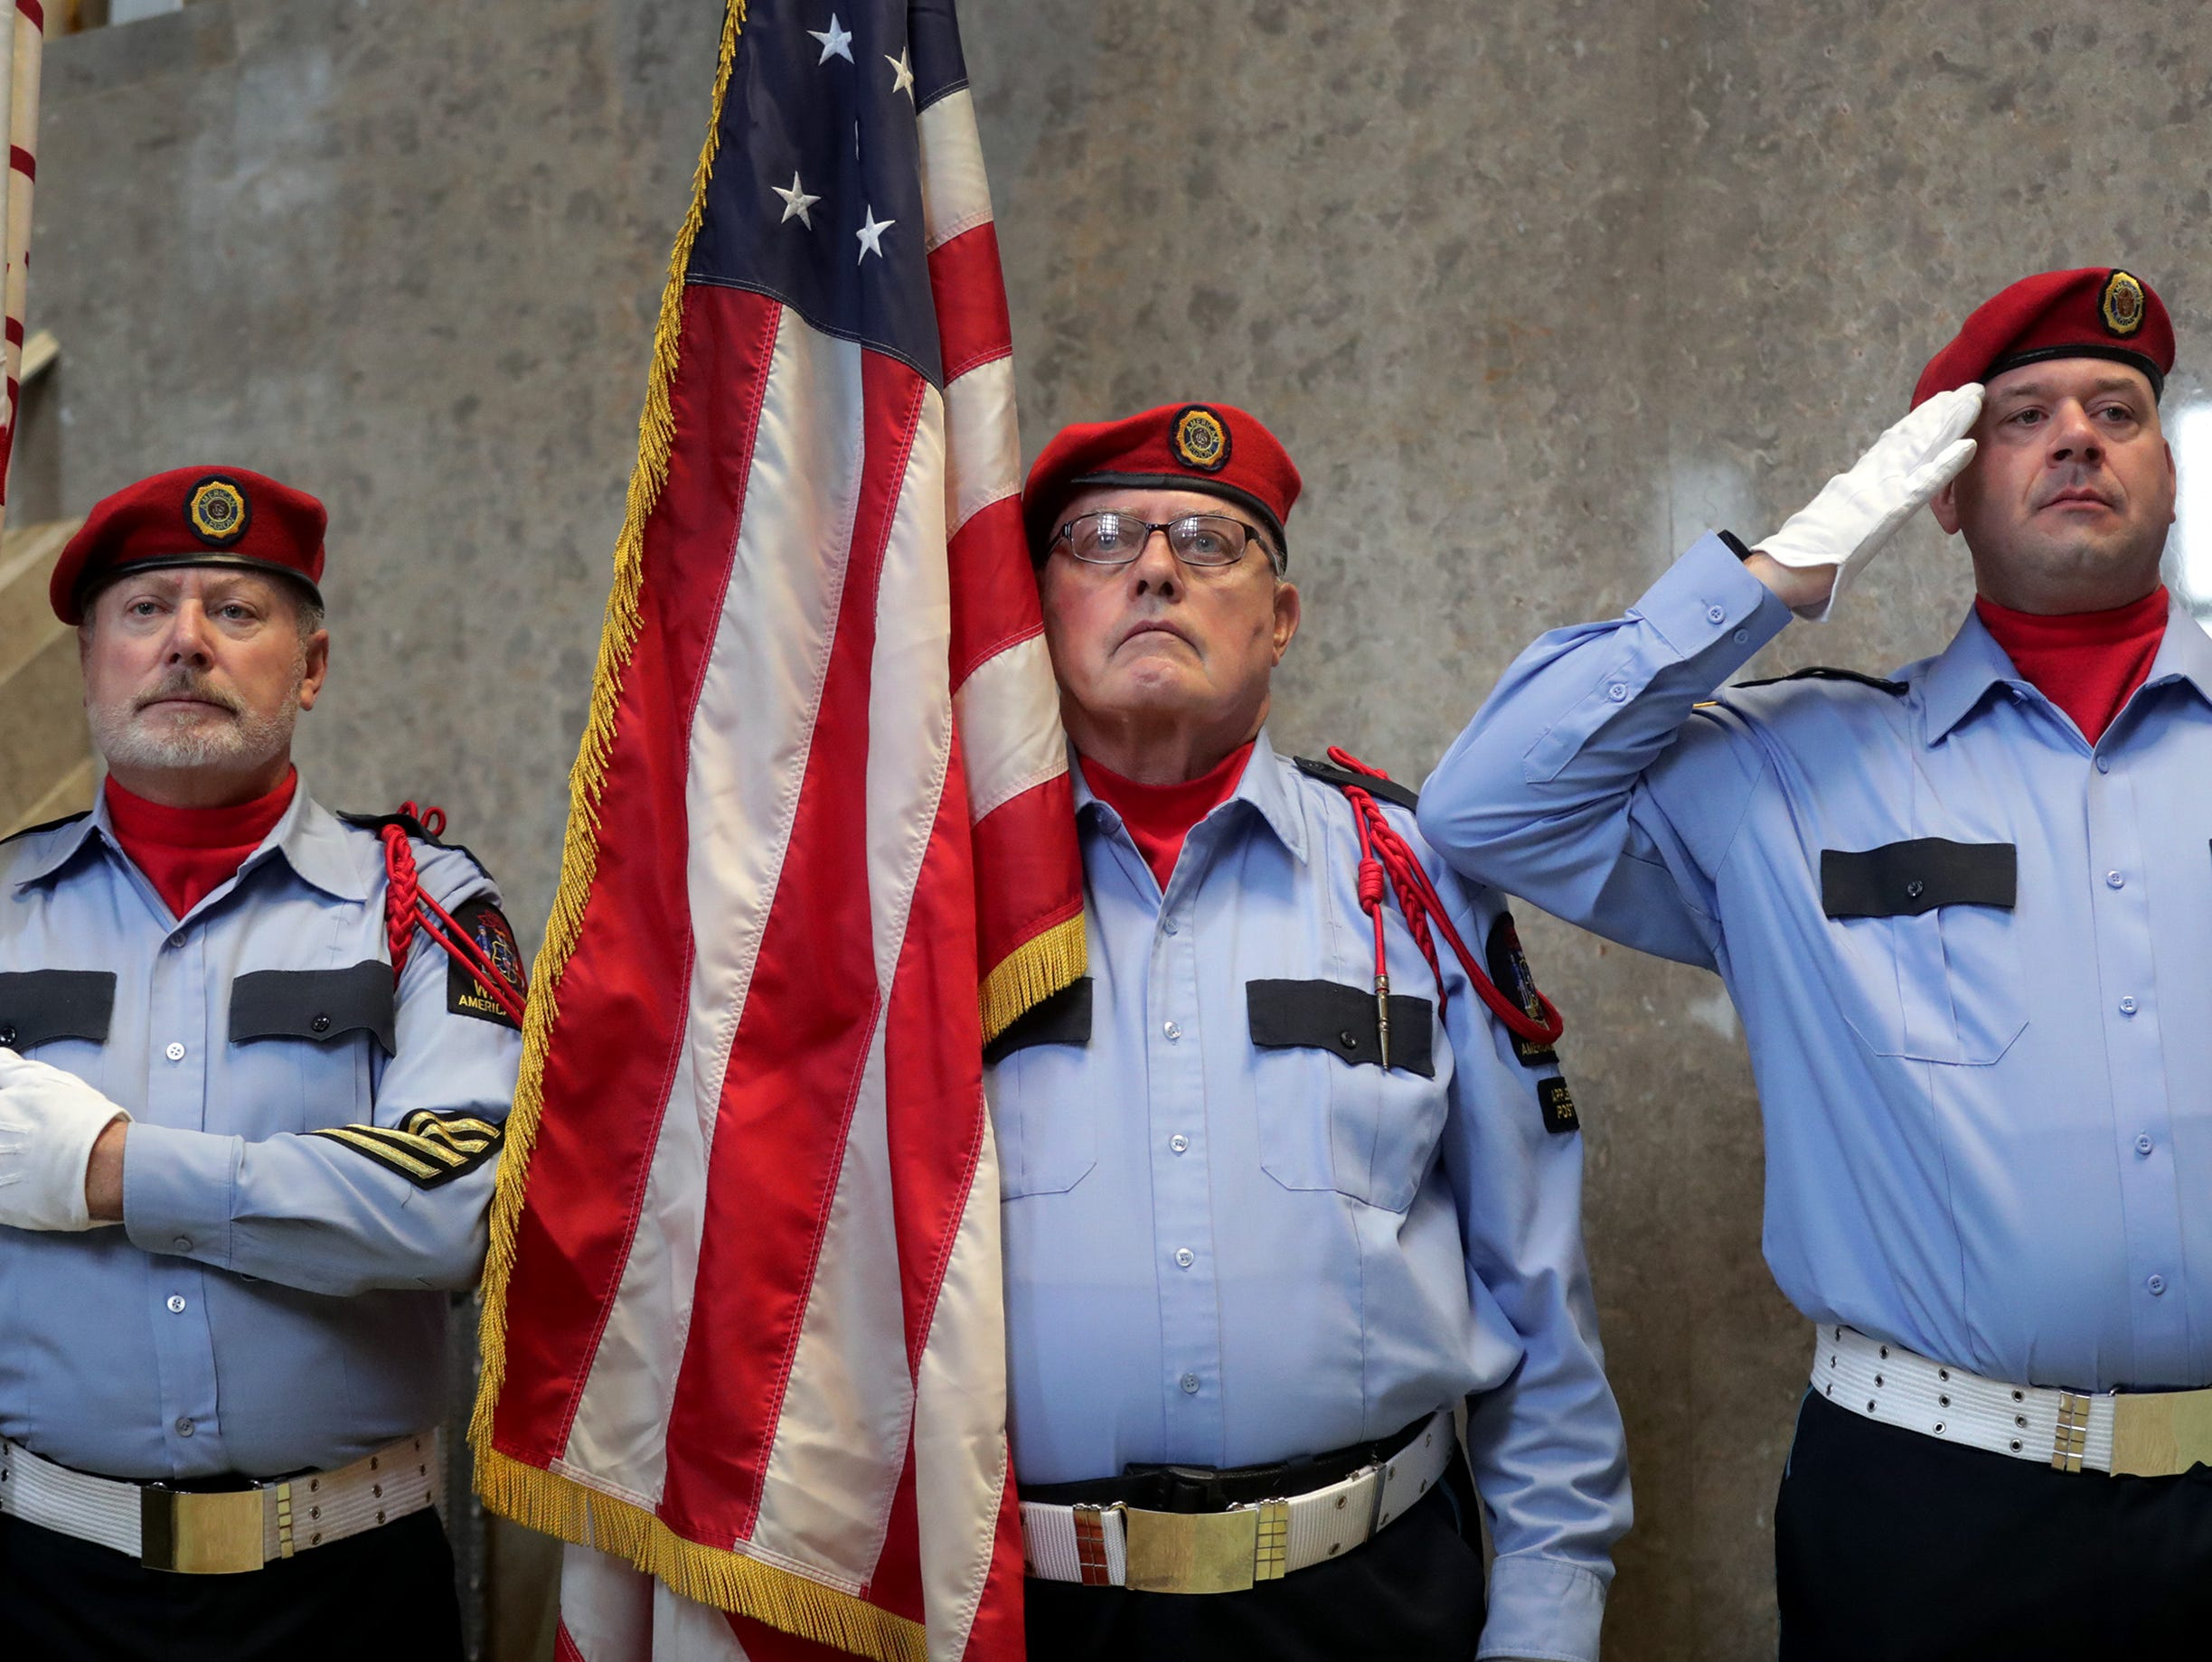 Appleton American Legion Post 38 Scarlet Guard members stand during the Outagamie County Veterans Day Service on Sunday, Nov. 11, 2018, in Appleton, Wis. The service, in part, commemorated the 100th anniversary of the end of WW I.